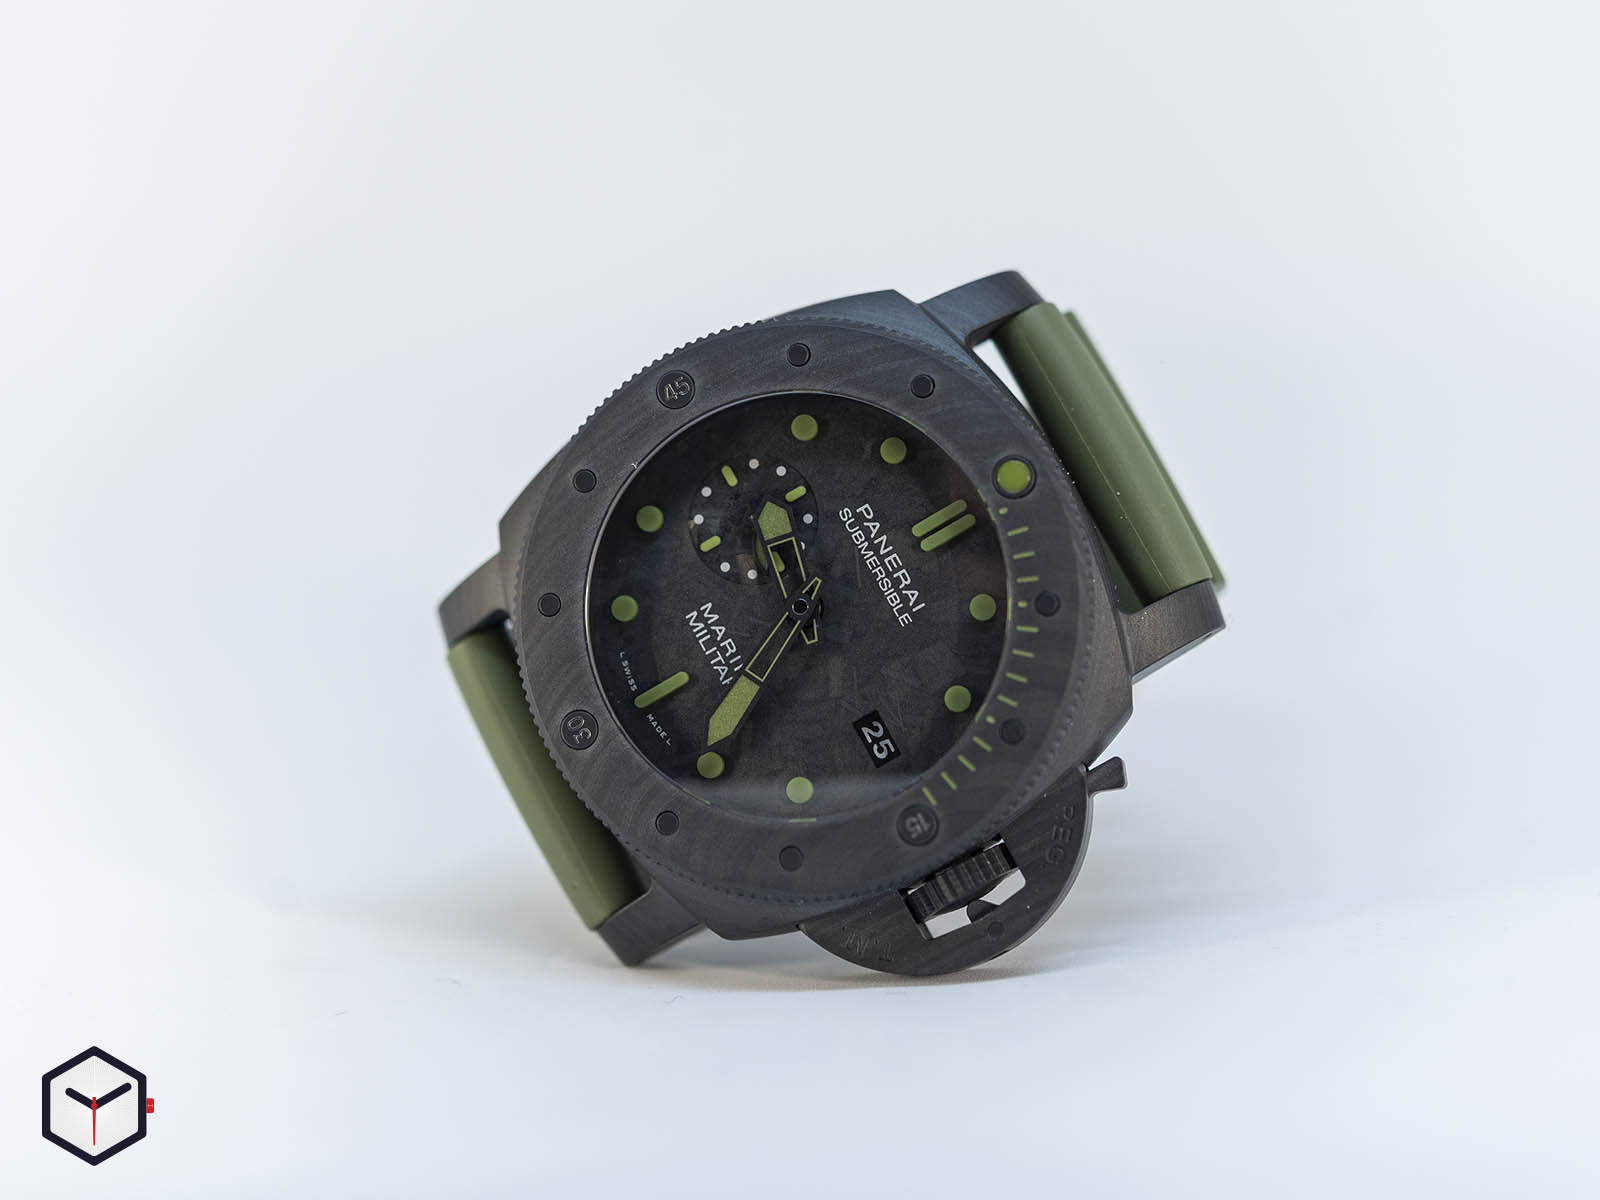 pam00961-officine-panerai-submersible-marina-militare-carbotech-47mm-sihh-2019-2.jpg